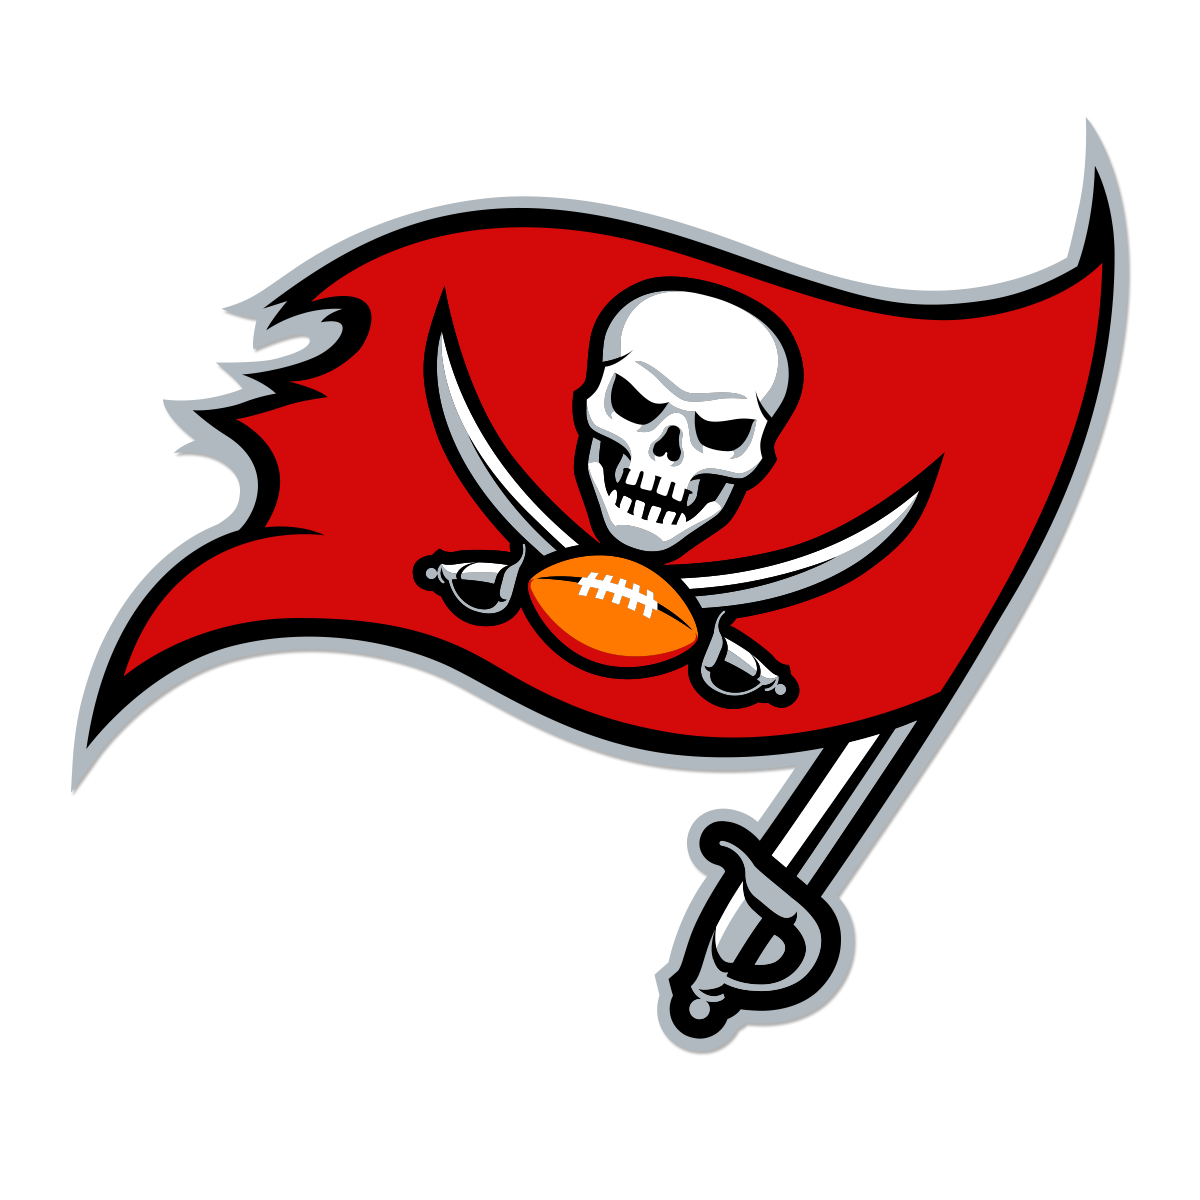 Top 10 Current NFL Logos   HowTheyPlay